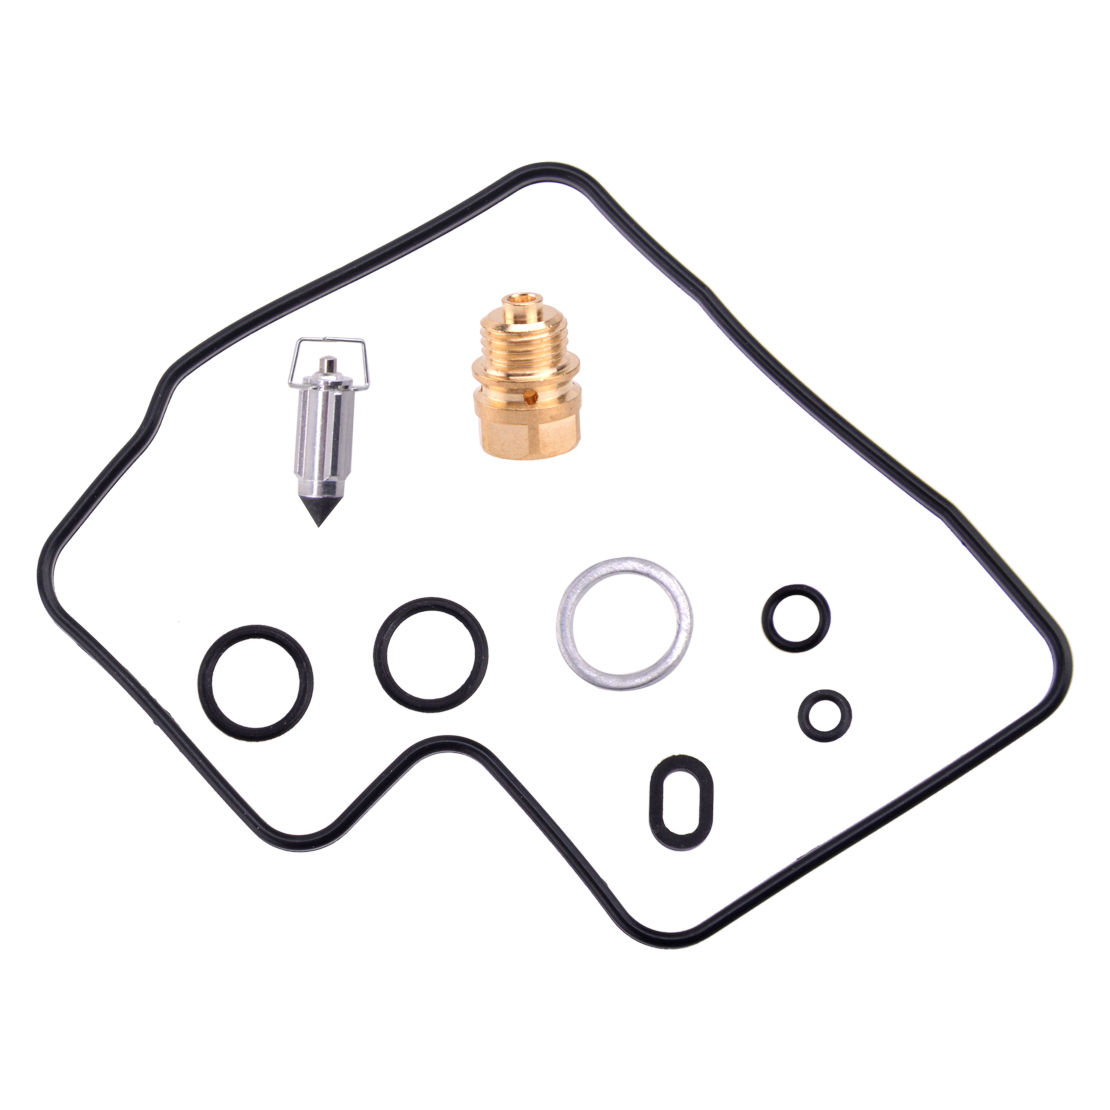 2x Carburetor Repair Rebuild Kit Fit for Honda VT750